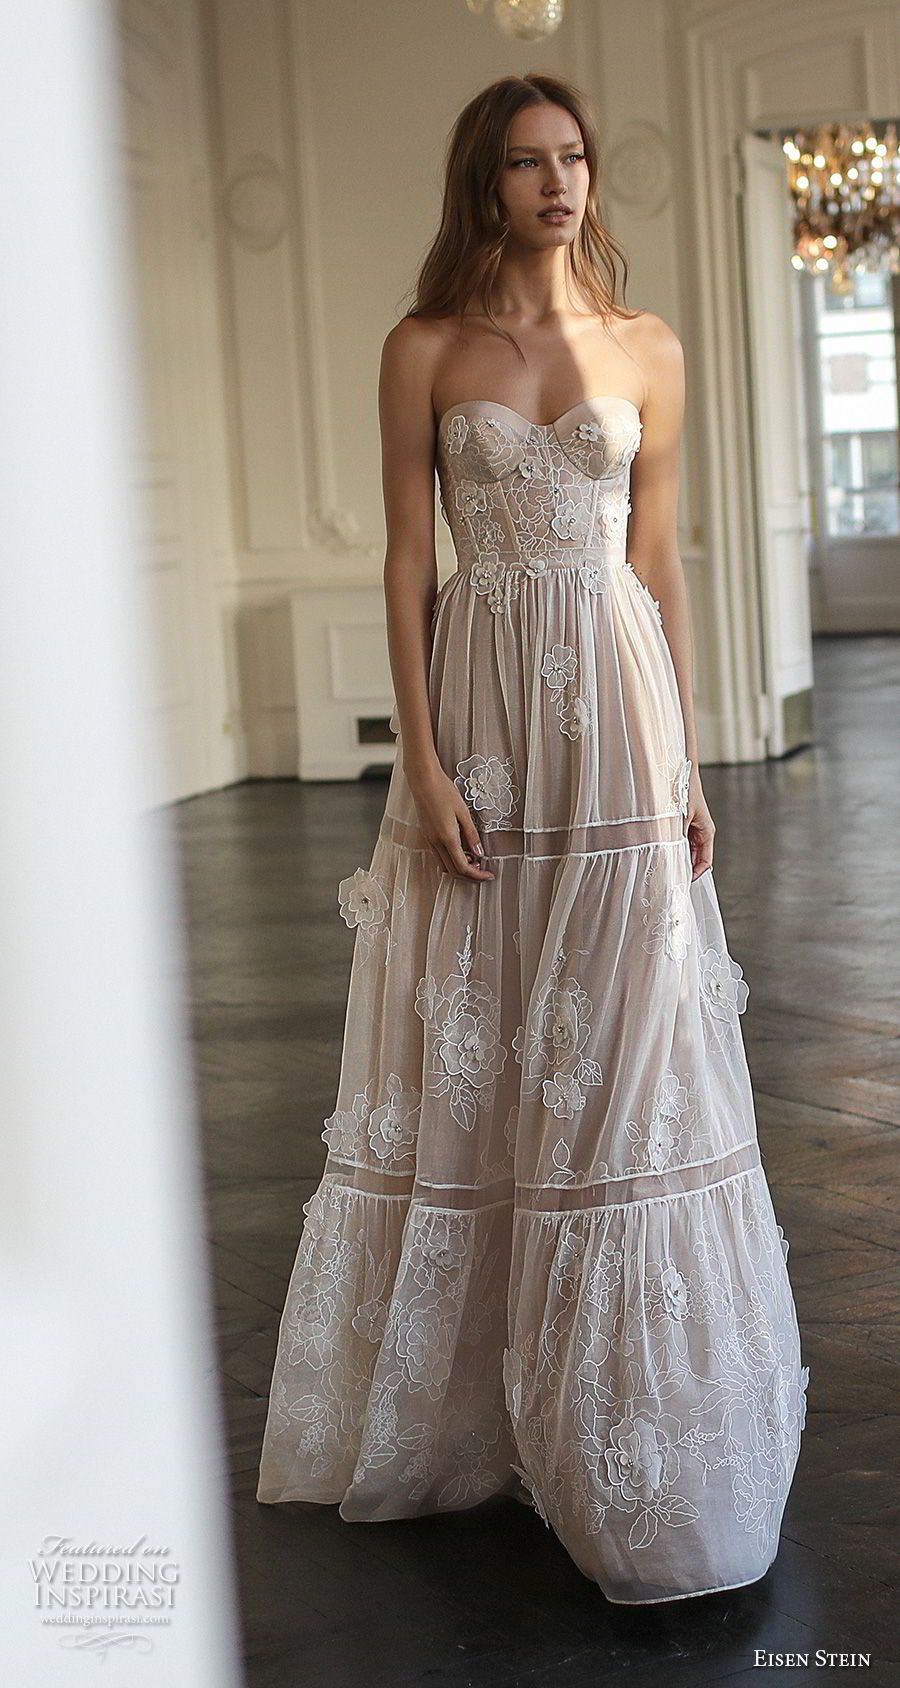 Eisen stein wedding dress u blush bridal collection vestidos